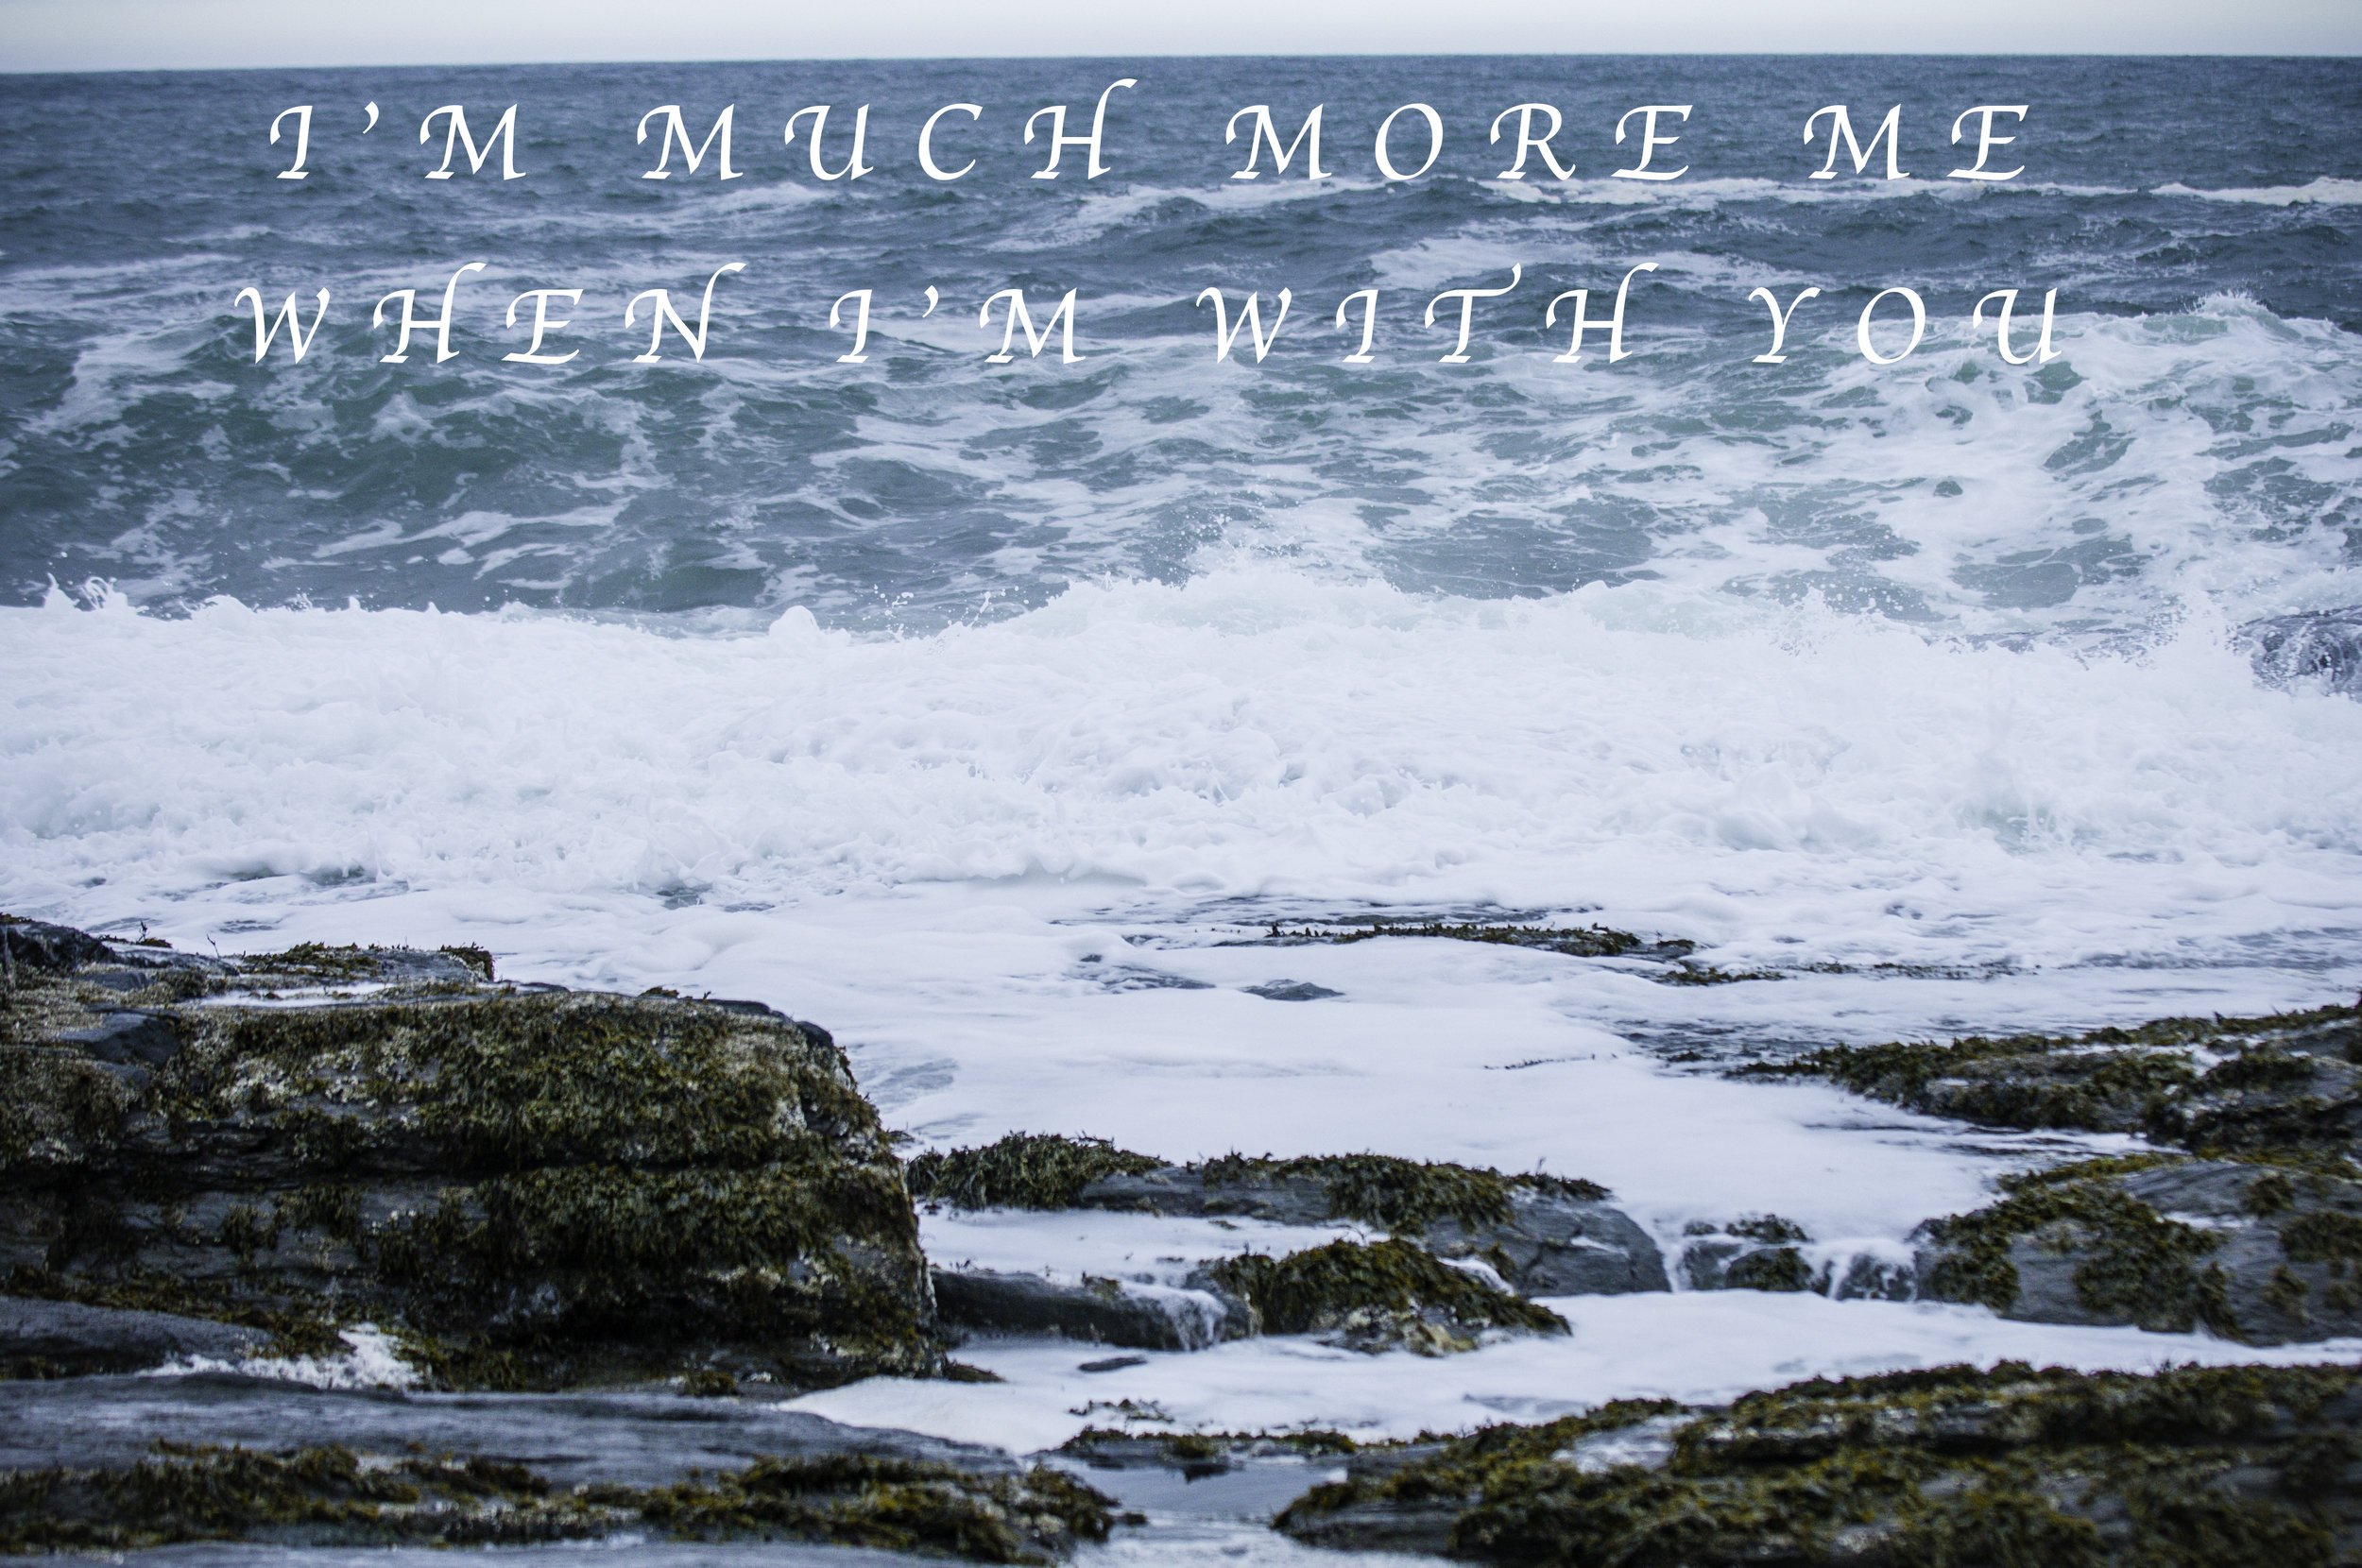 I'm much more me when I'm with you